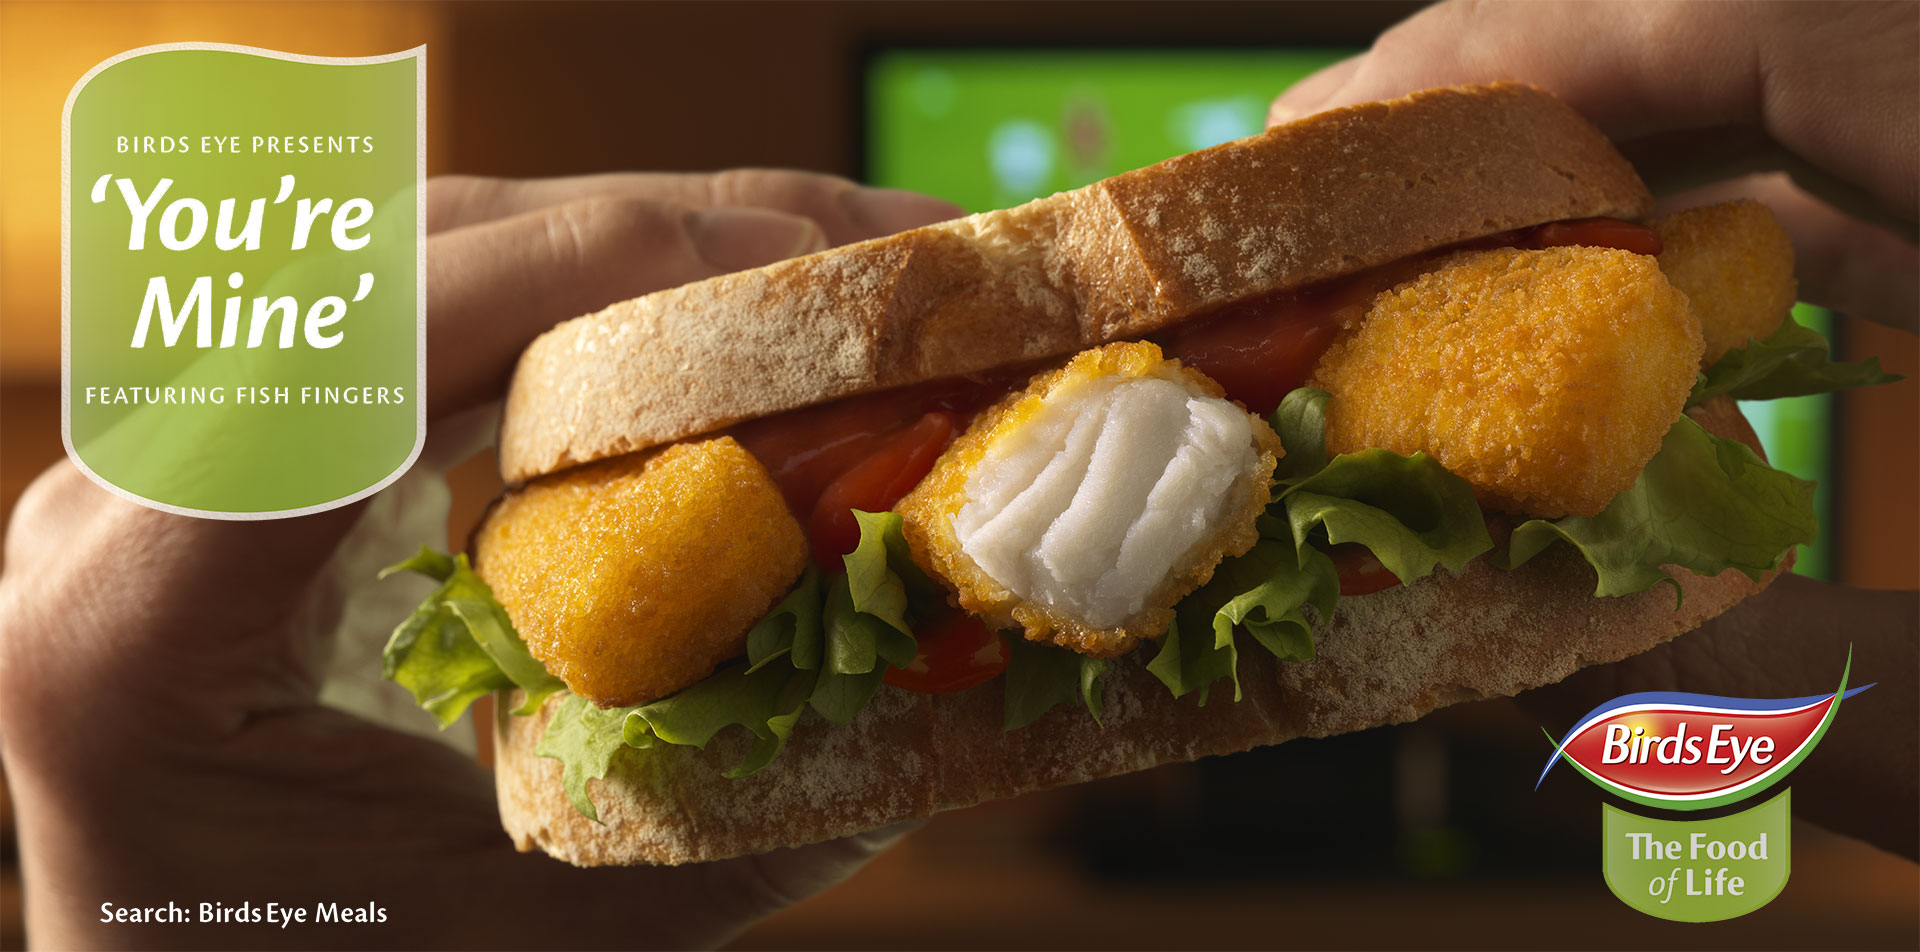 2.Fish-Finger-Sandwich.jpg